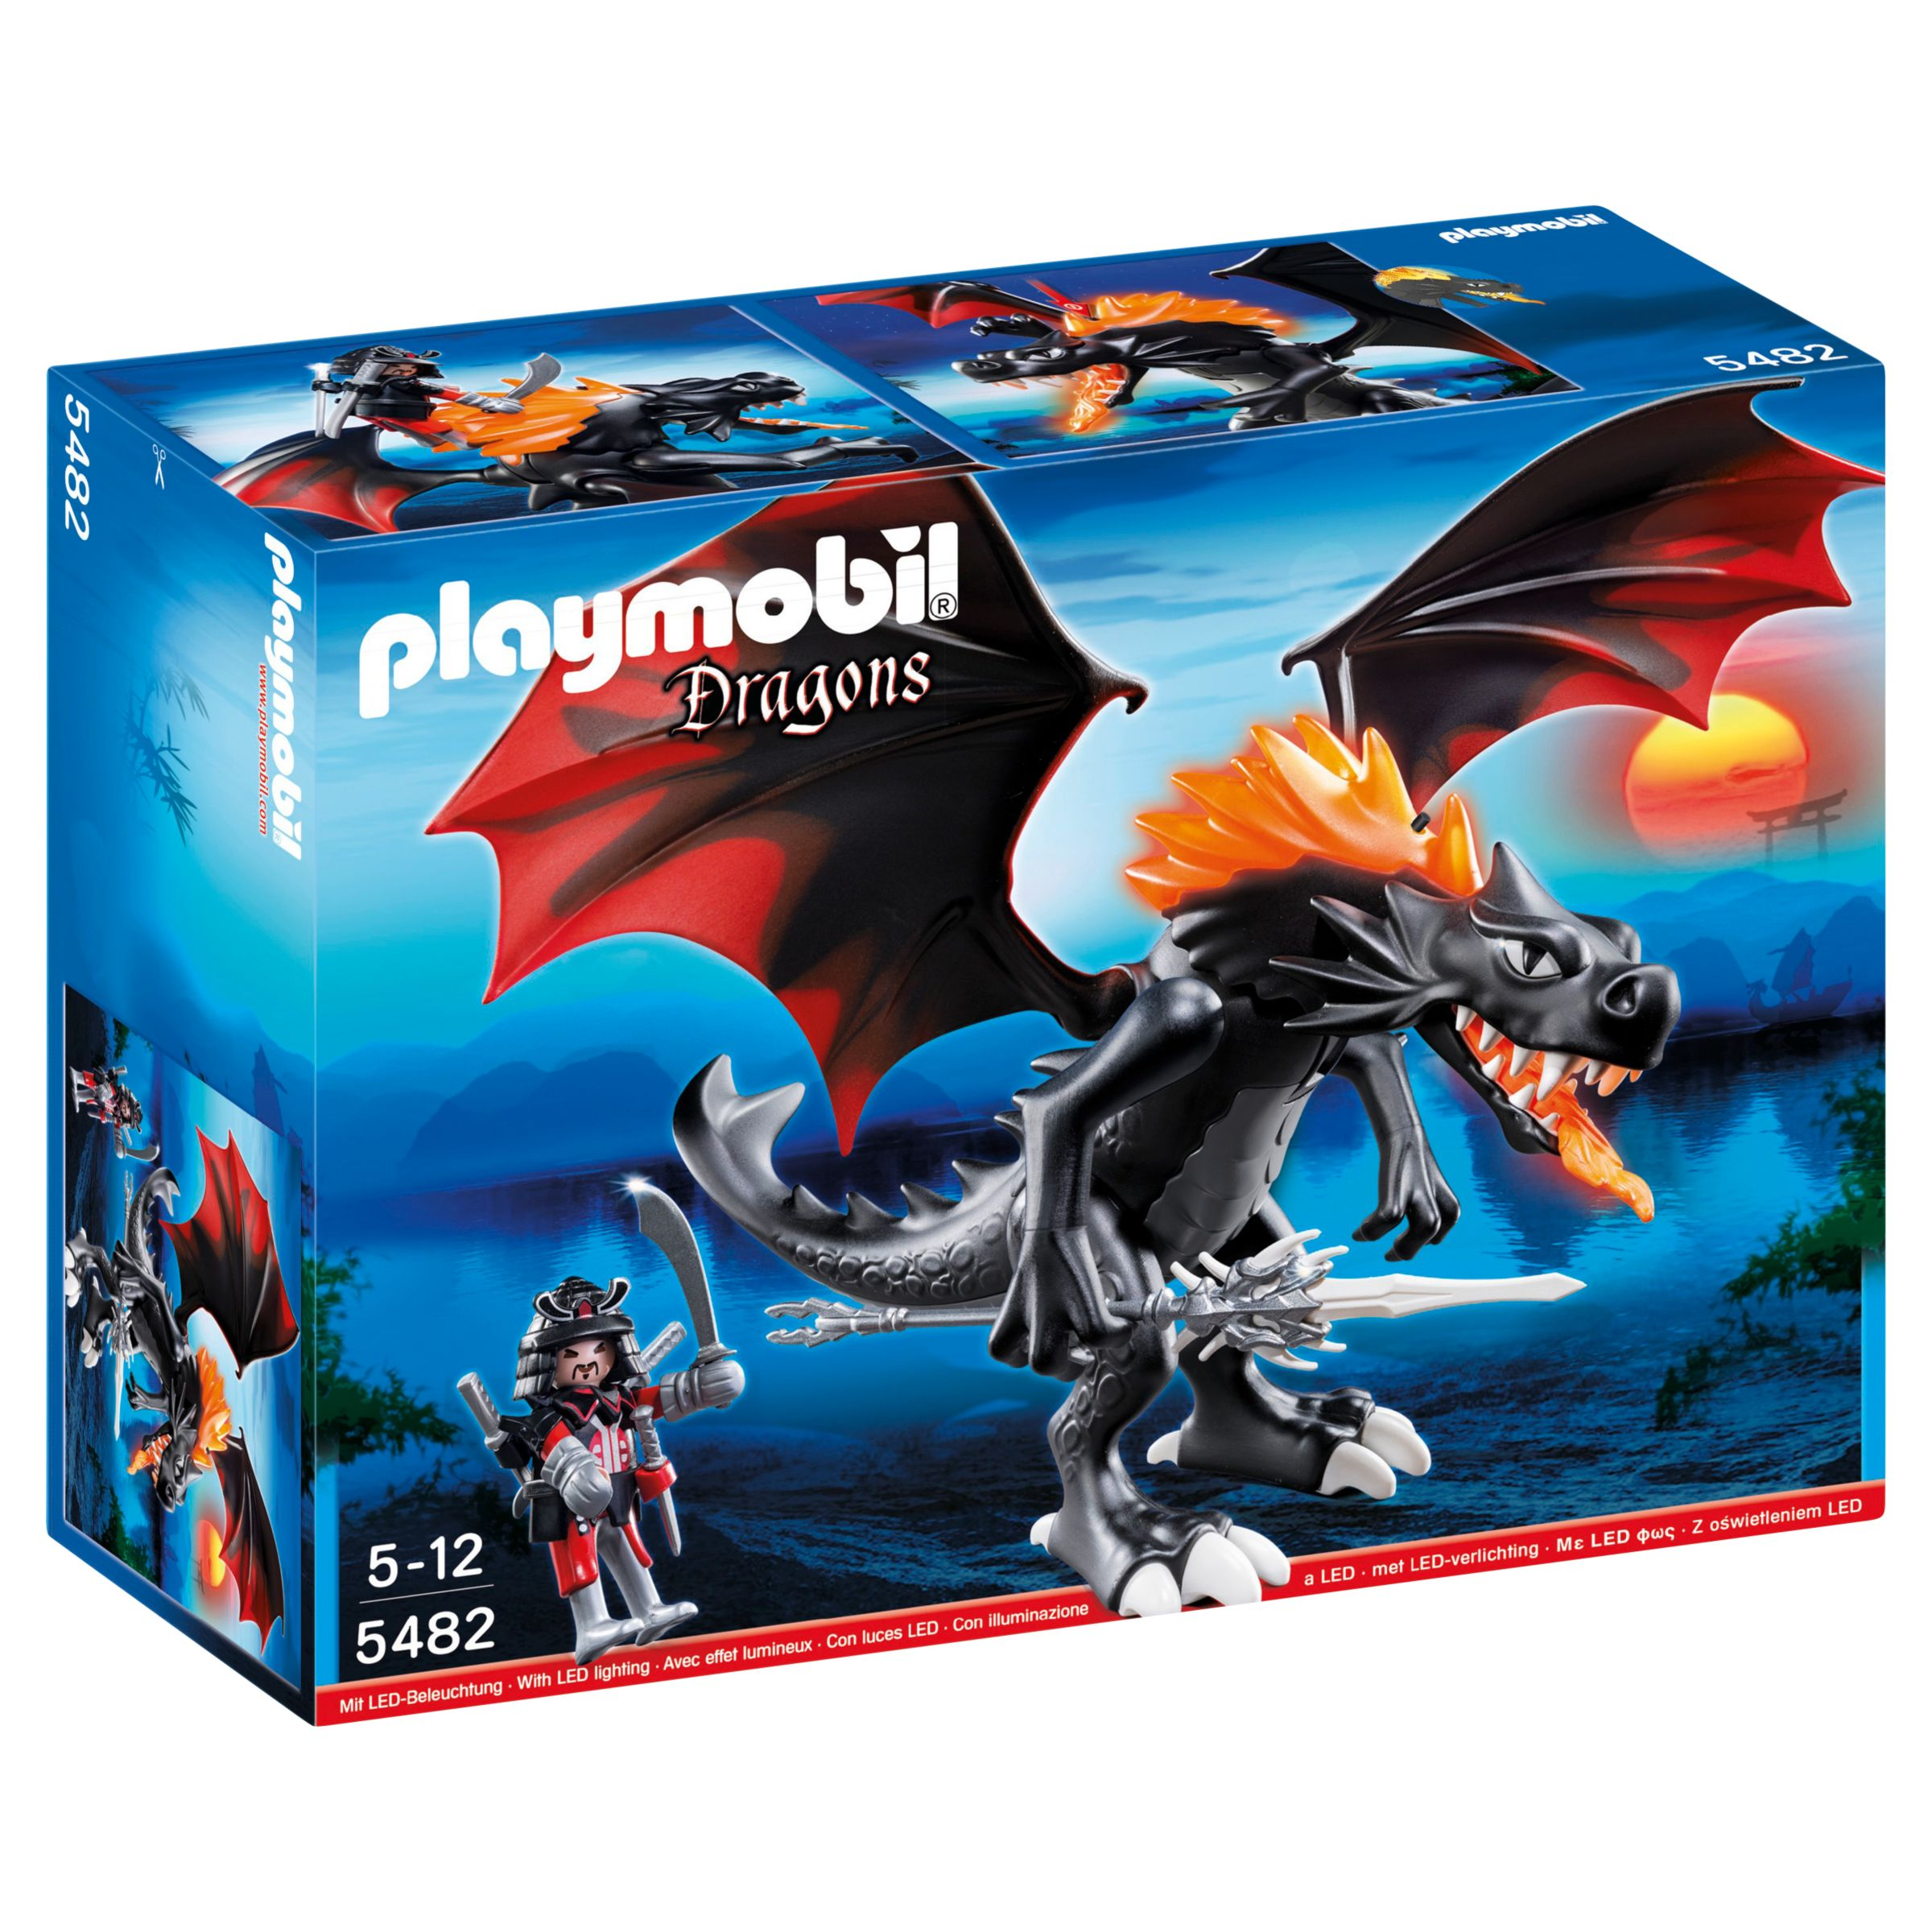 Click here for Playmobil Dragons Giant Battle Dragon with LED Fire